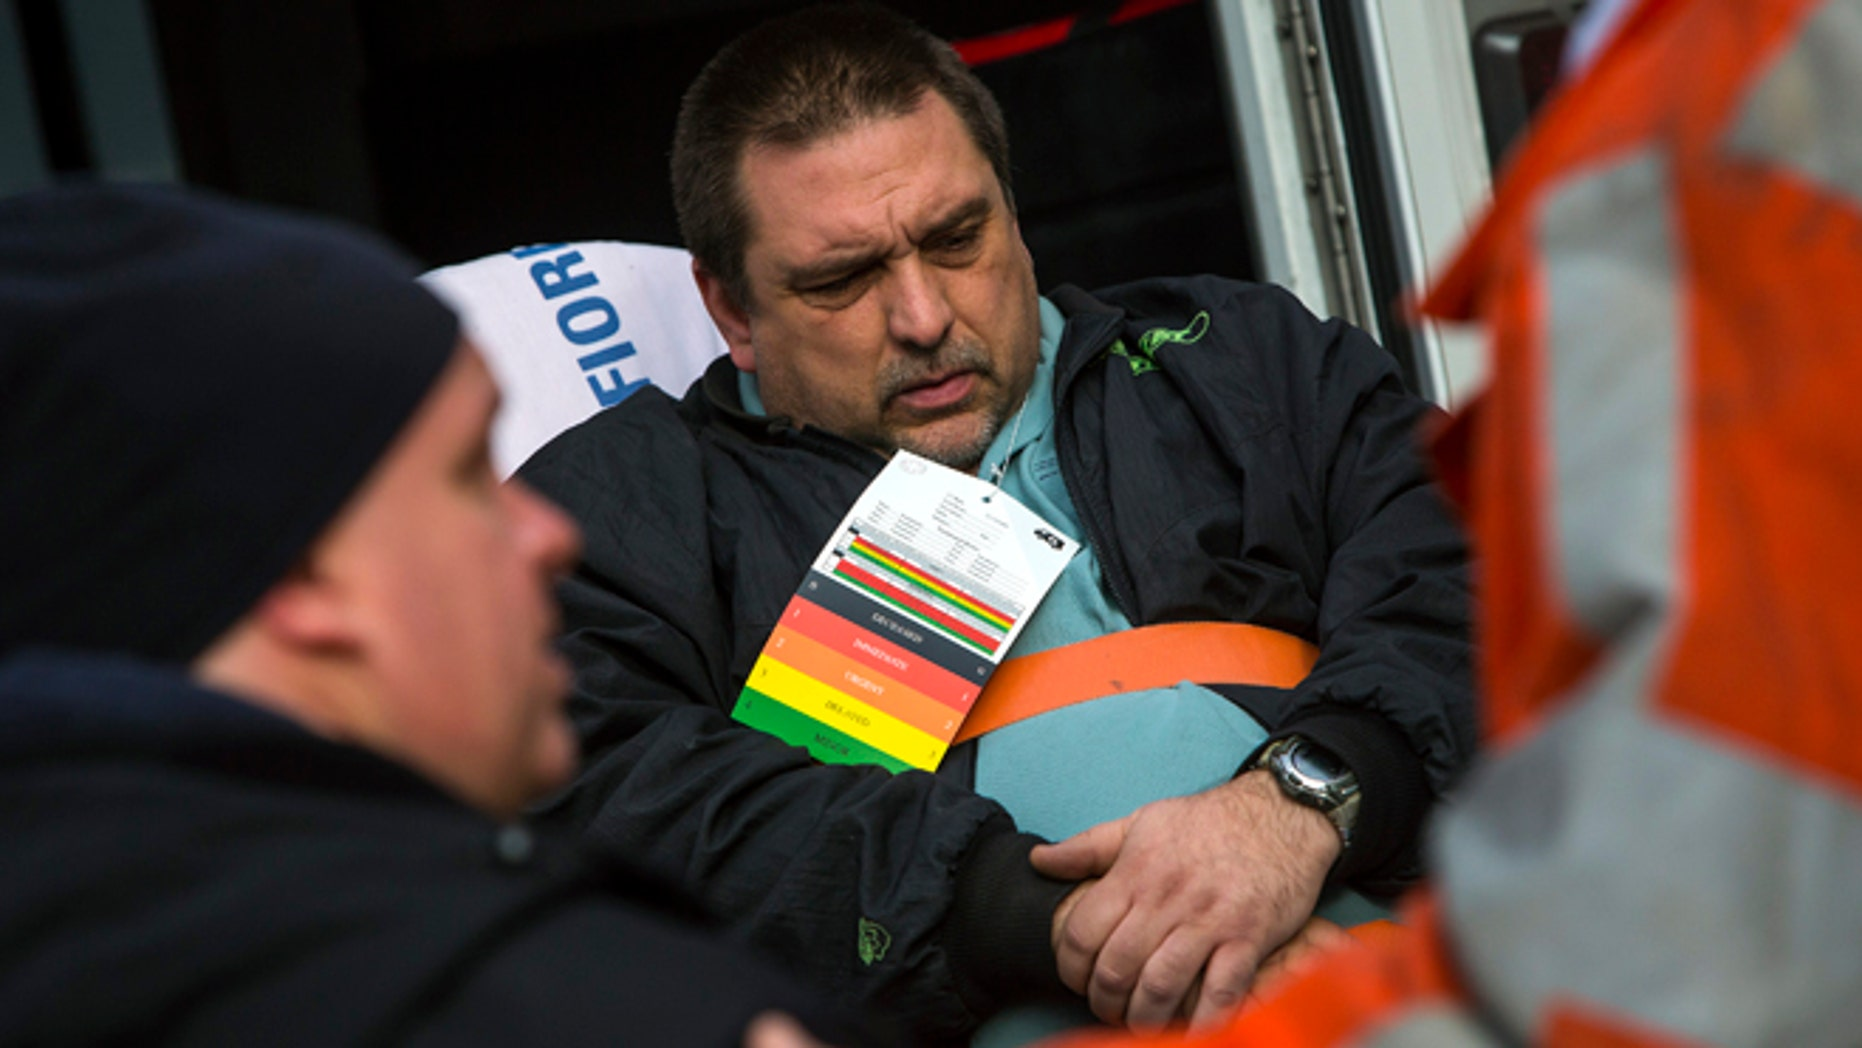 Dec. 1, 2013: Metro-North engineer William Rockefeller is loaded into an ambulance after a train derailment in the Bronx borough of New York.